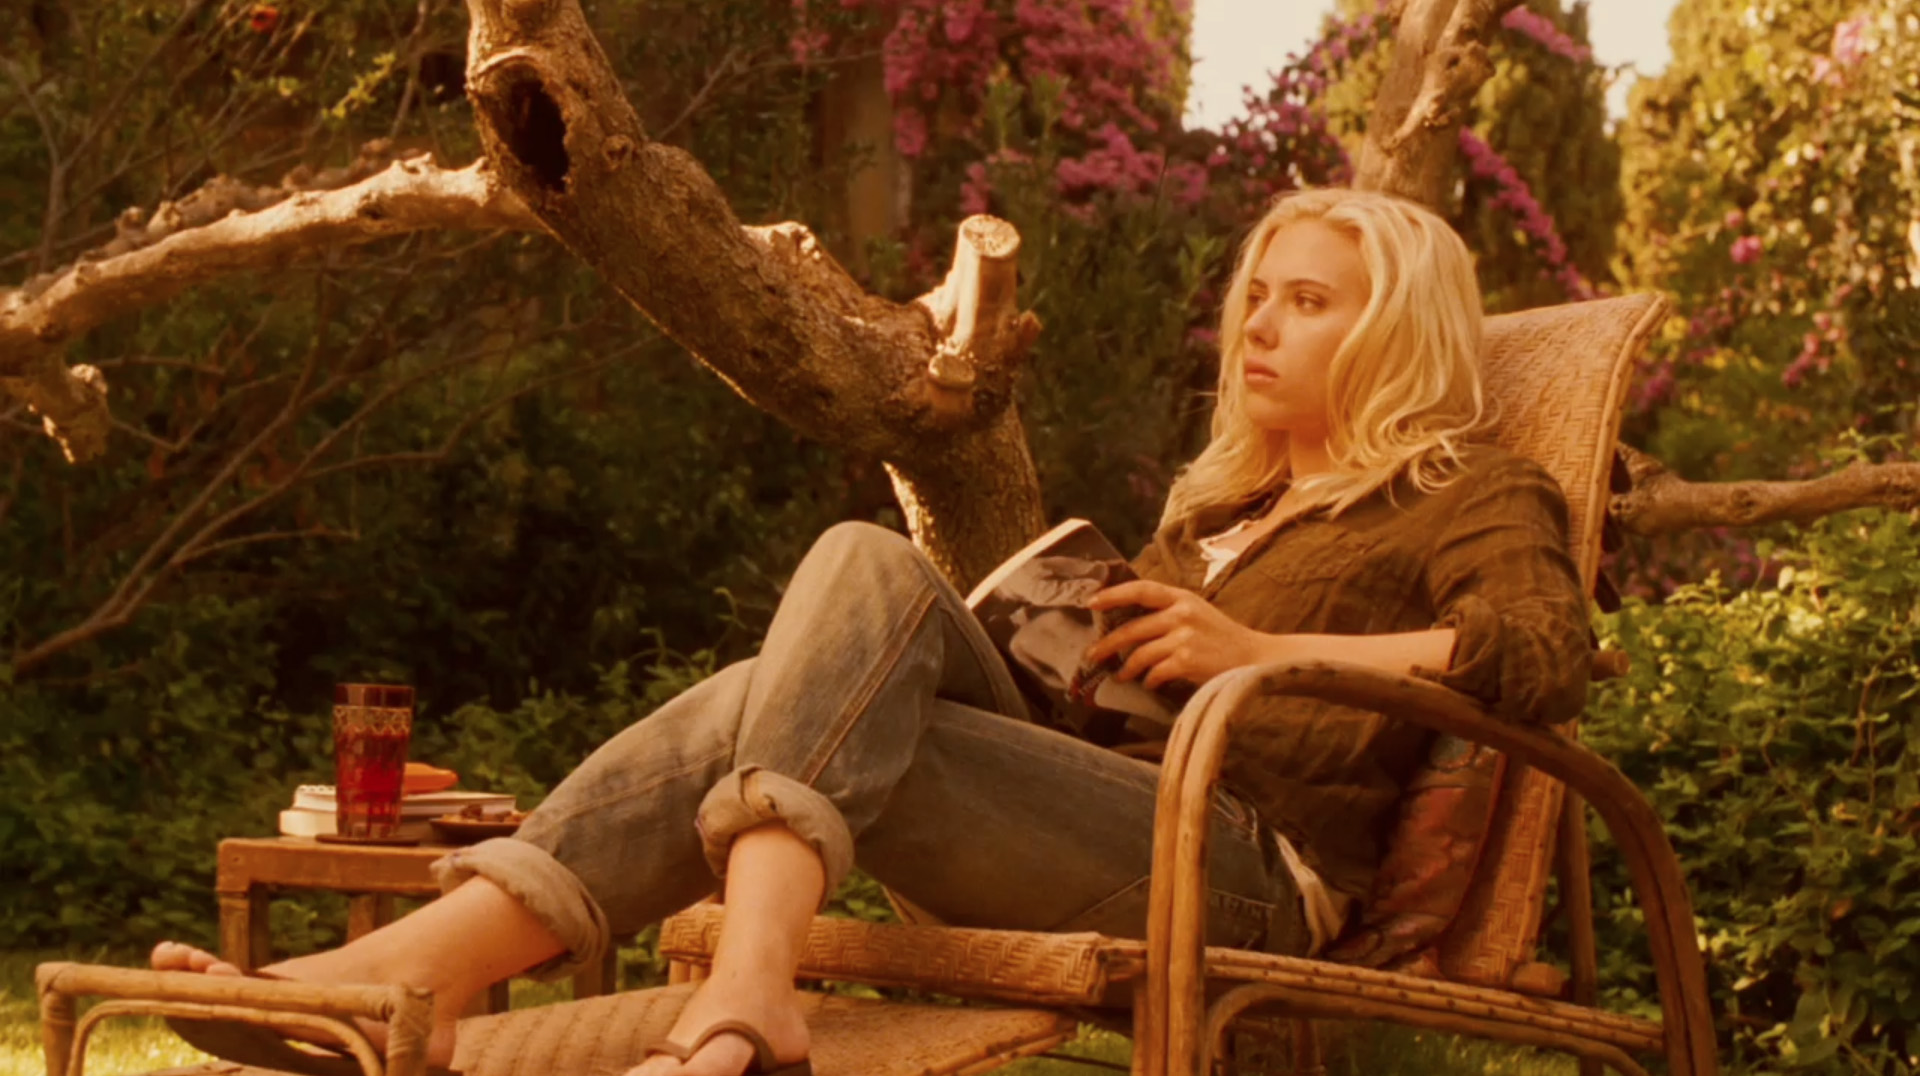 vicky cristina barcelona full movie free